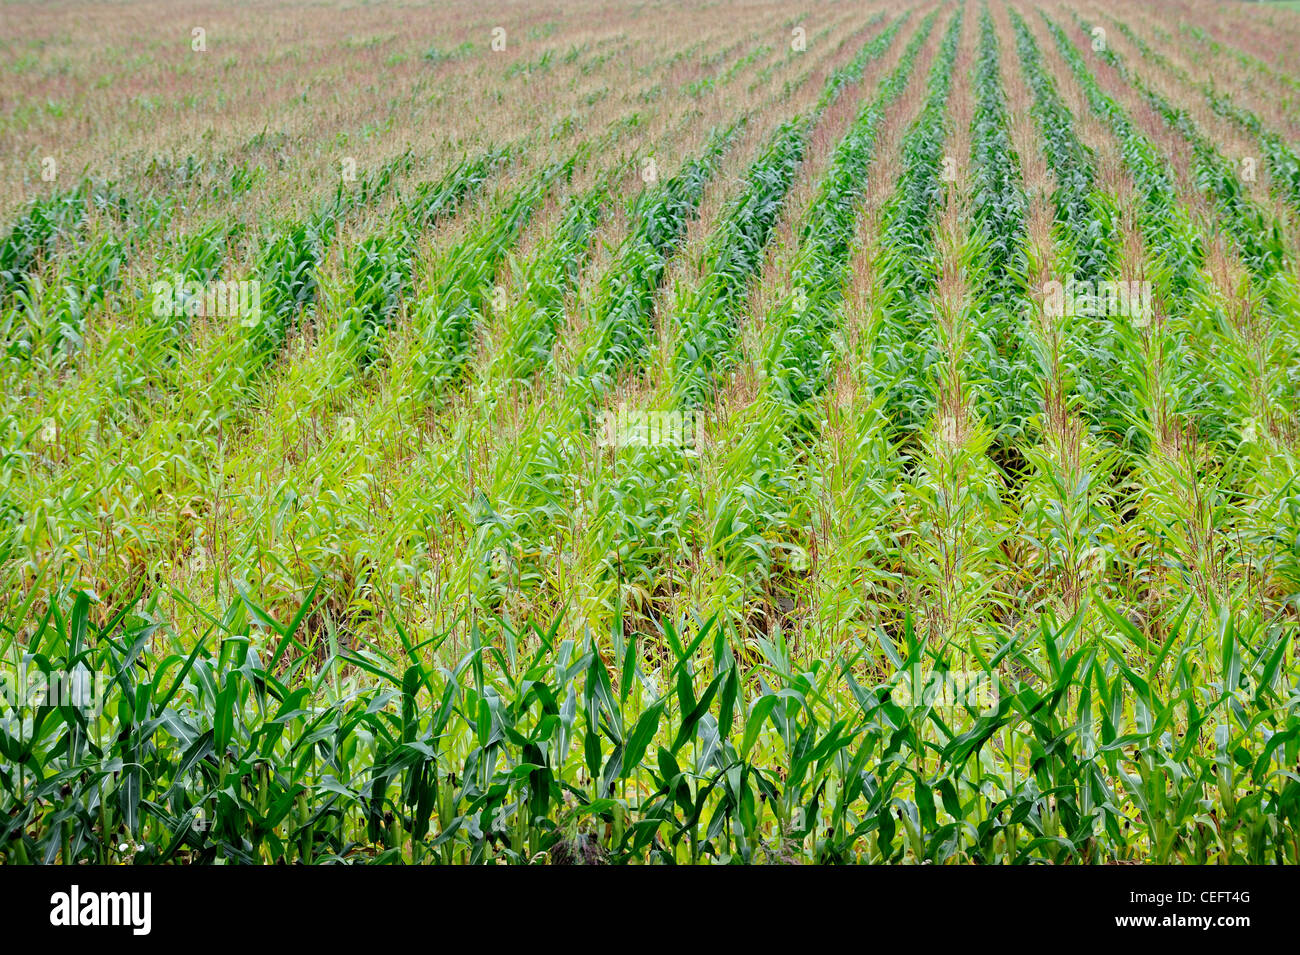 Field showing rows of Maize (Zea mays) in summer, Belgium - Stock Image